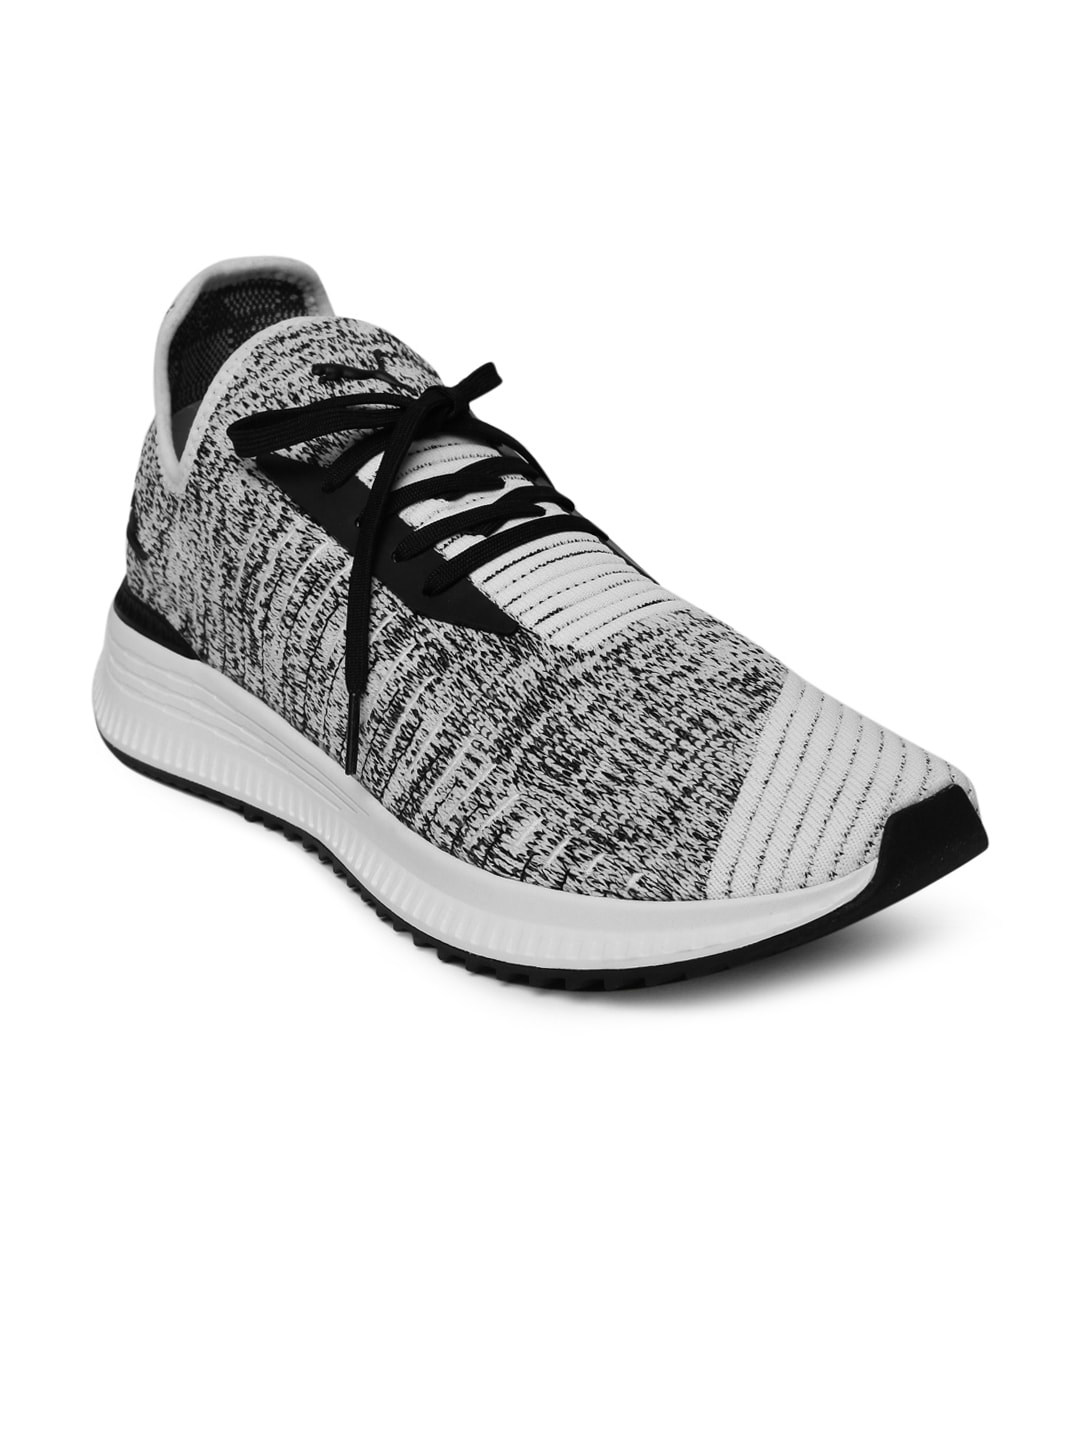 e4a286b3d8ac3c Puma Shoes - Buy Puma Shoes for Men   Women Online in India